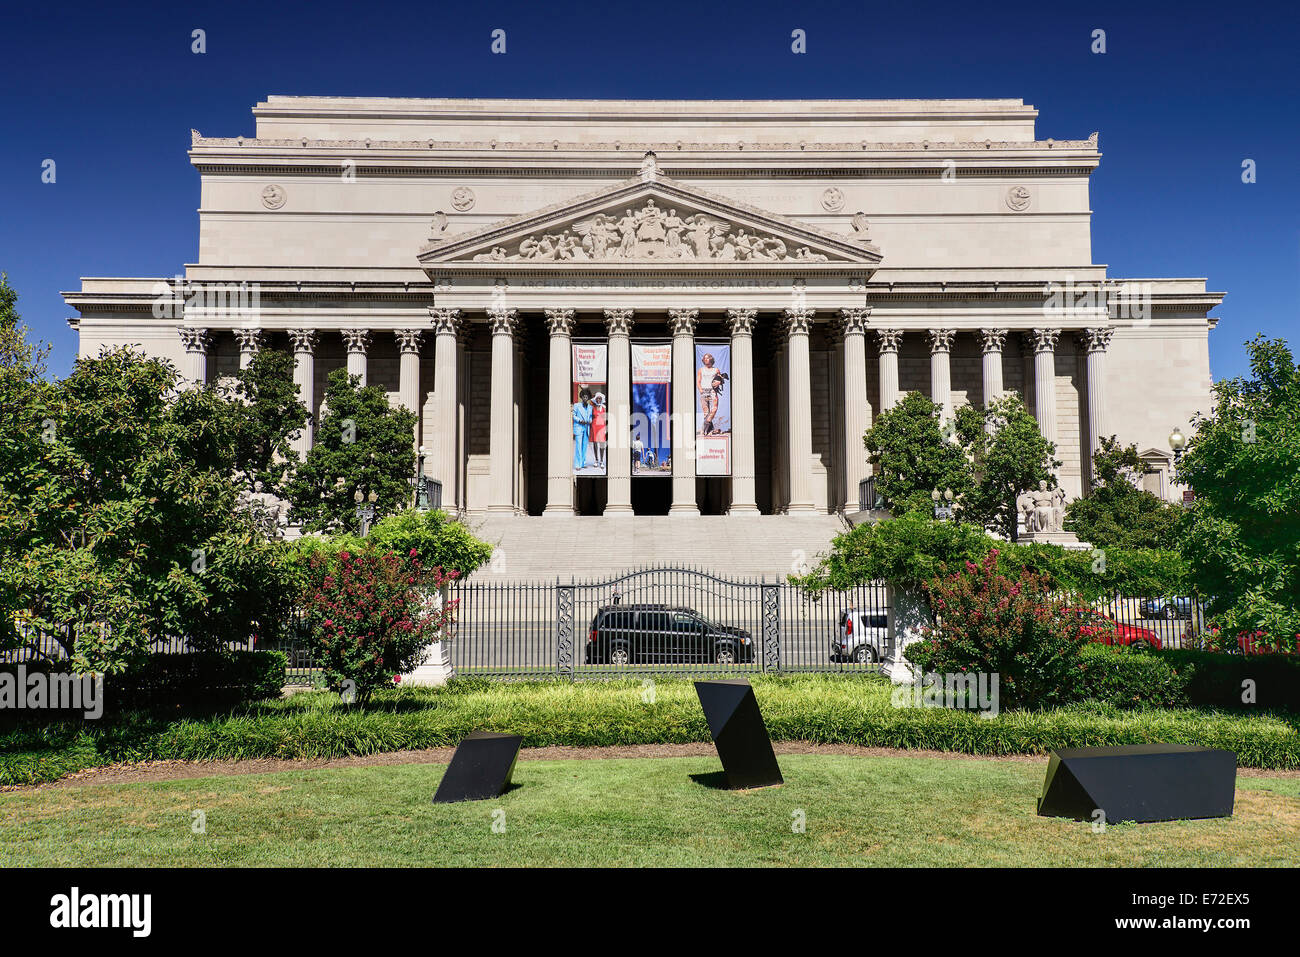 USA, Washington DC, The Mall  Archives of the United States of America. - Stock Image